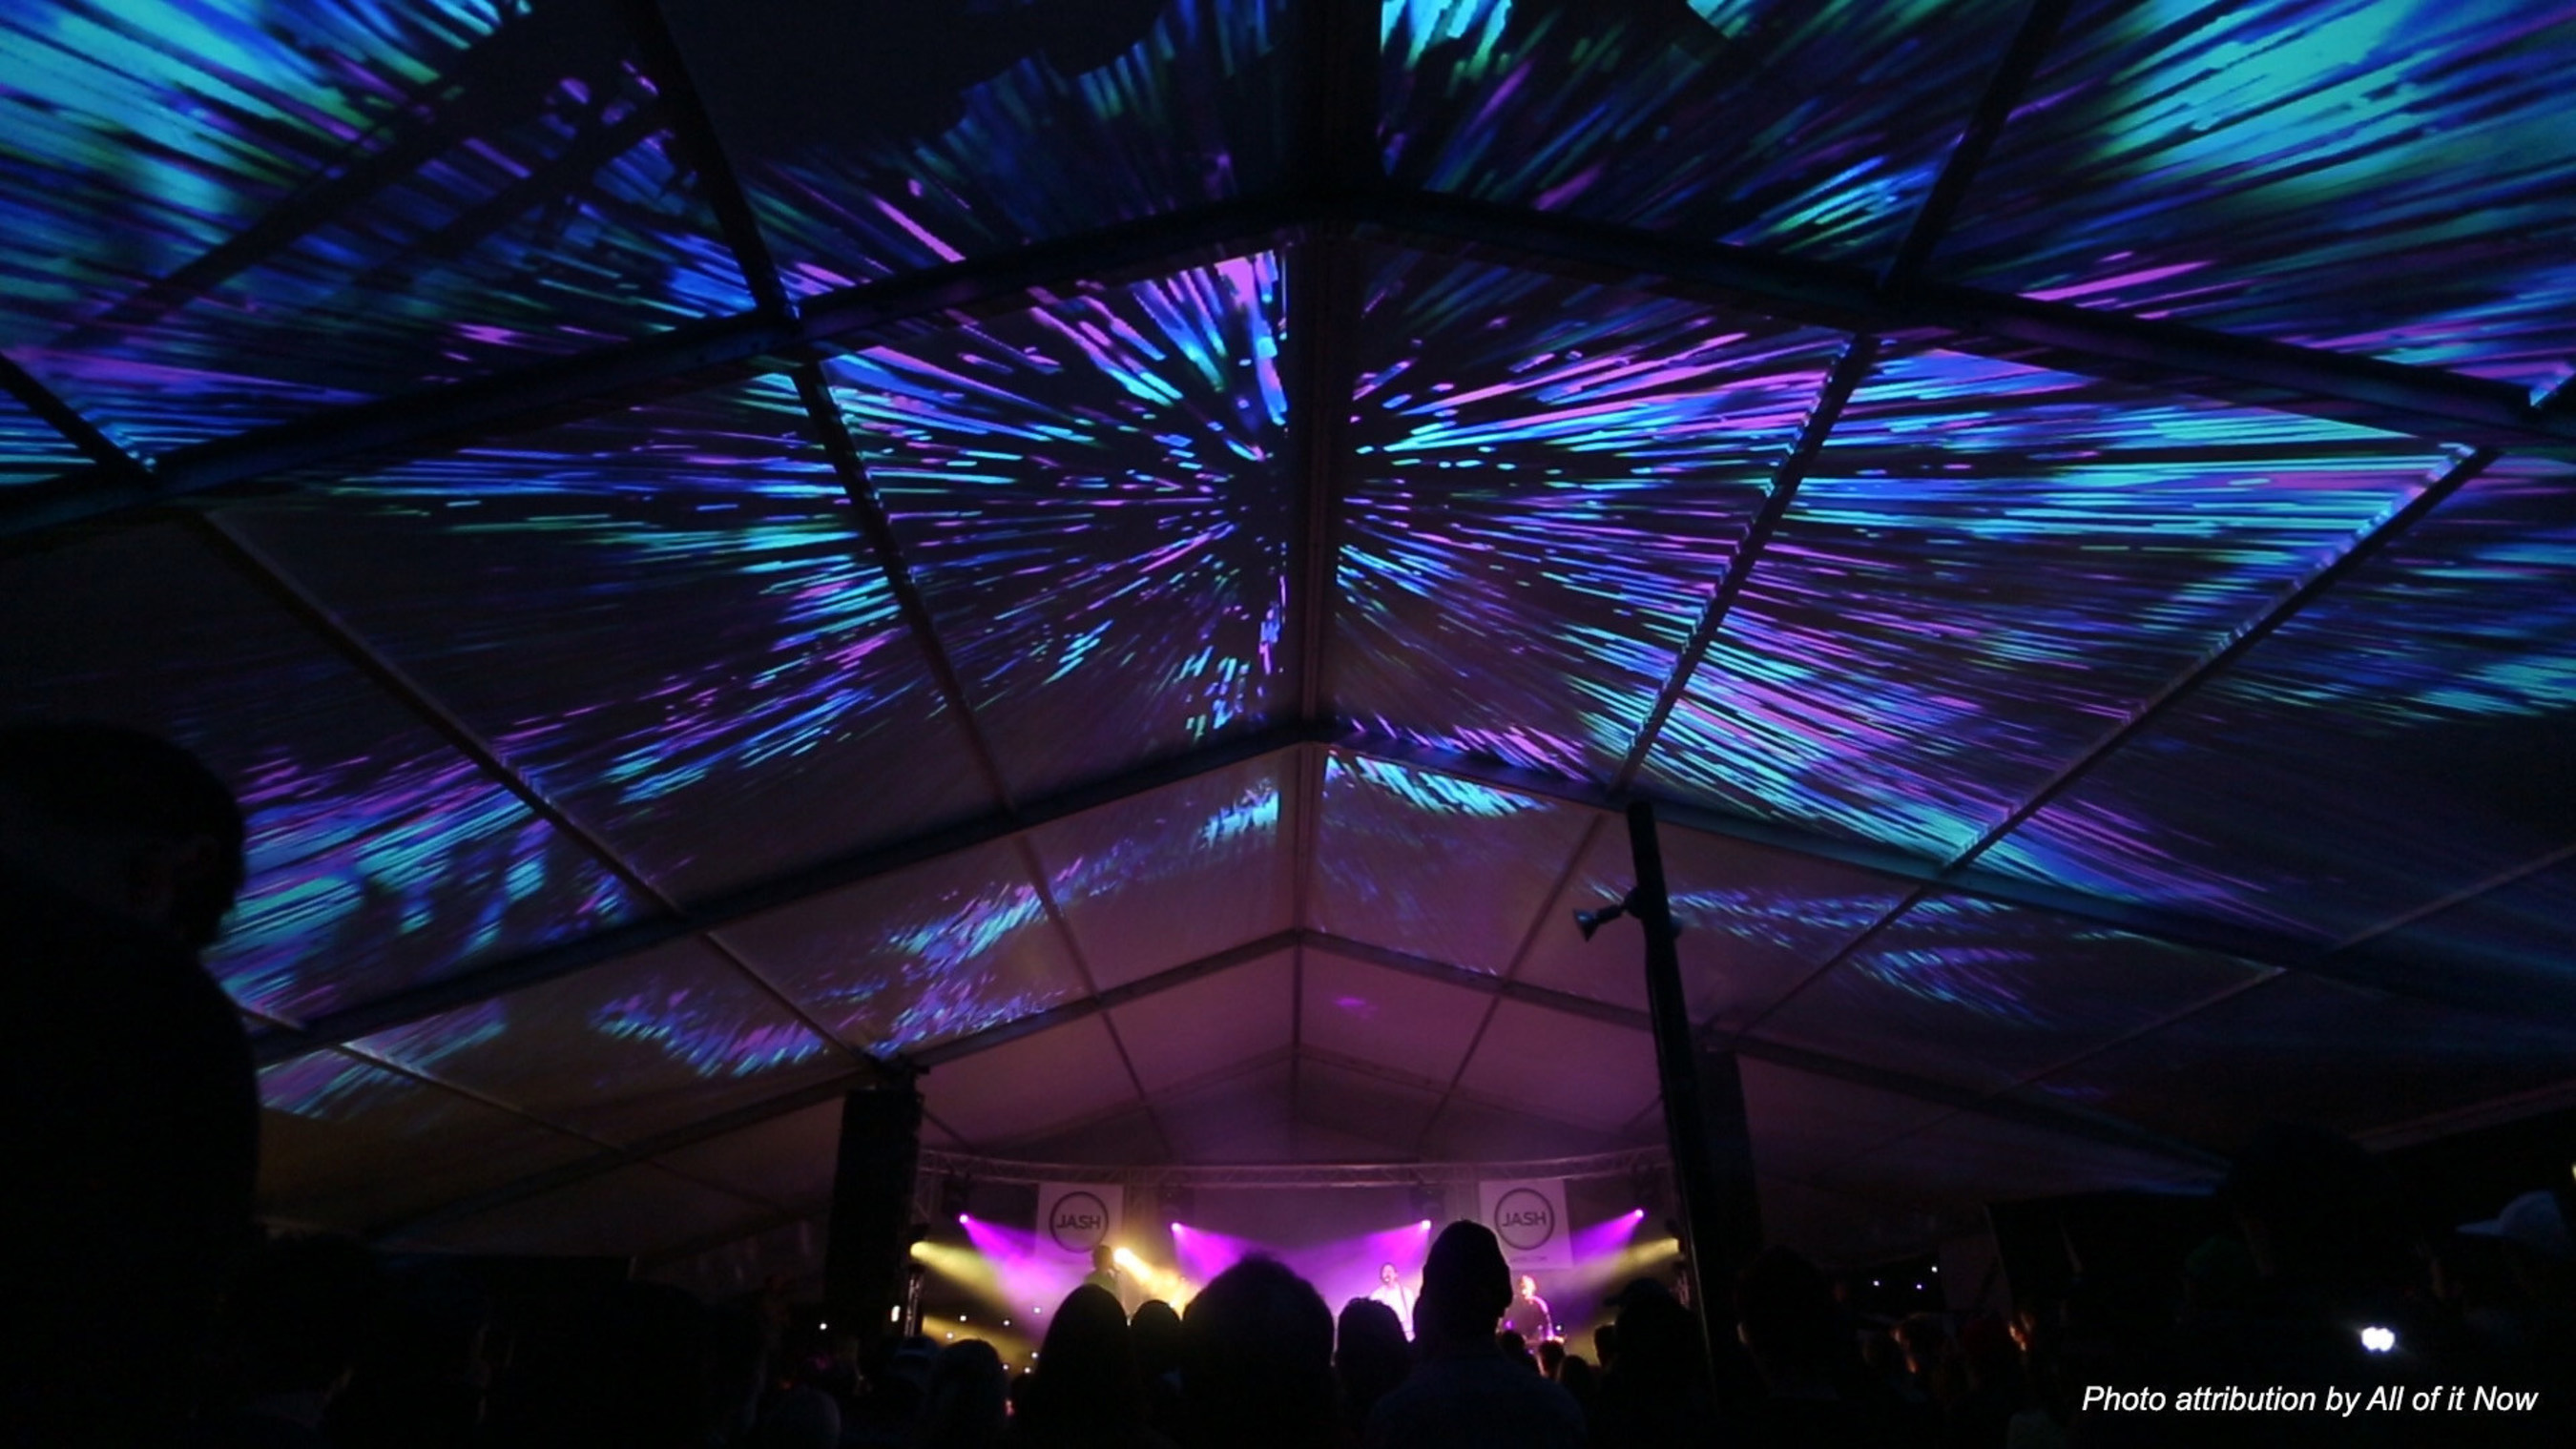 All of it Now used Epson Pro Z-Series projectors to create a 60' x 80' planetarium style projection mapping installation at the space-themed Fun Fun Fun Fest in Austin, Texas.